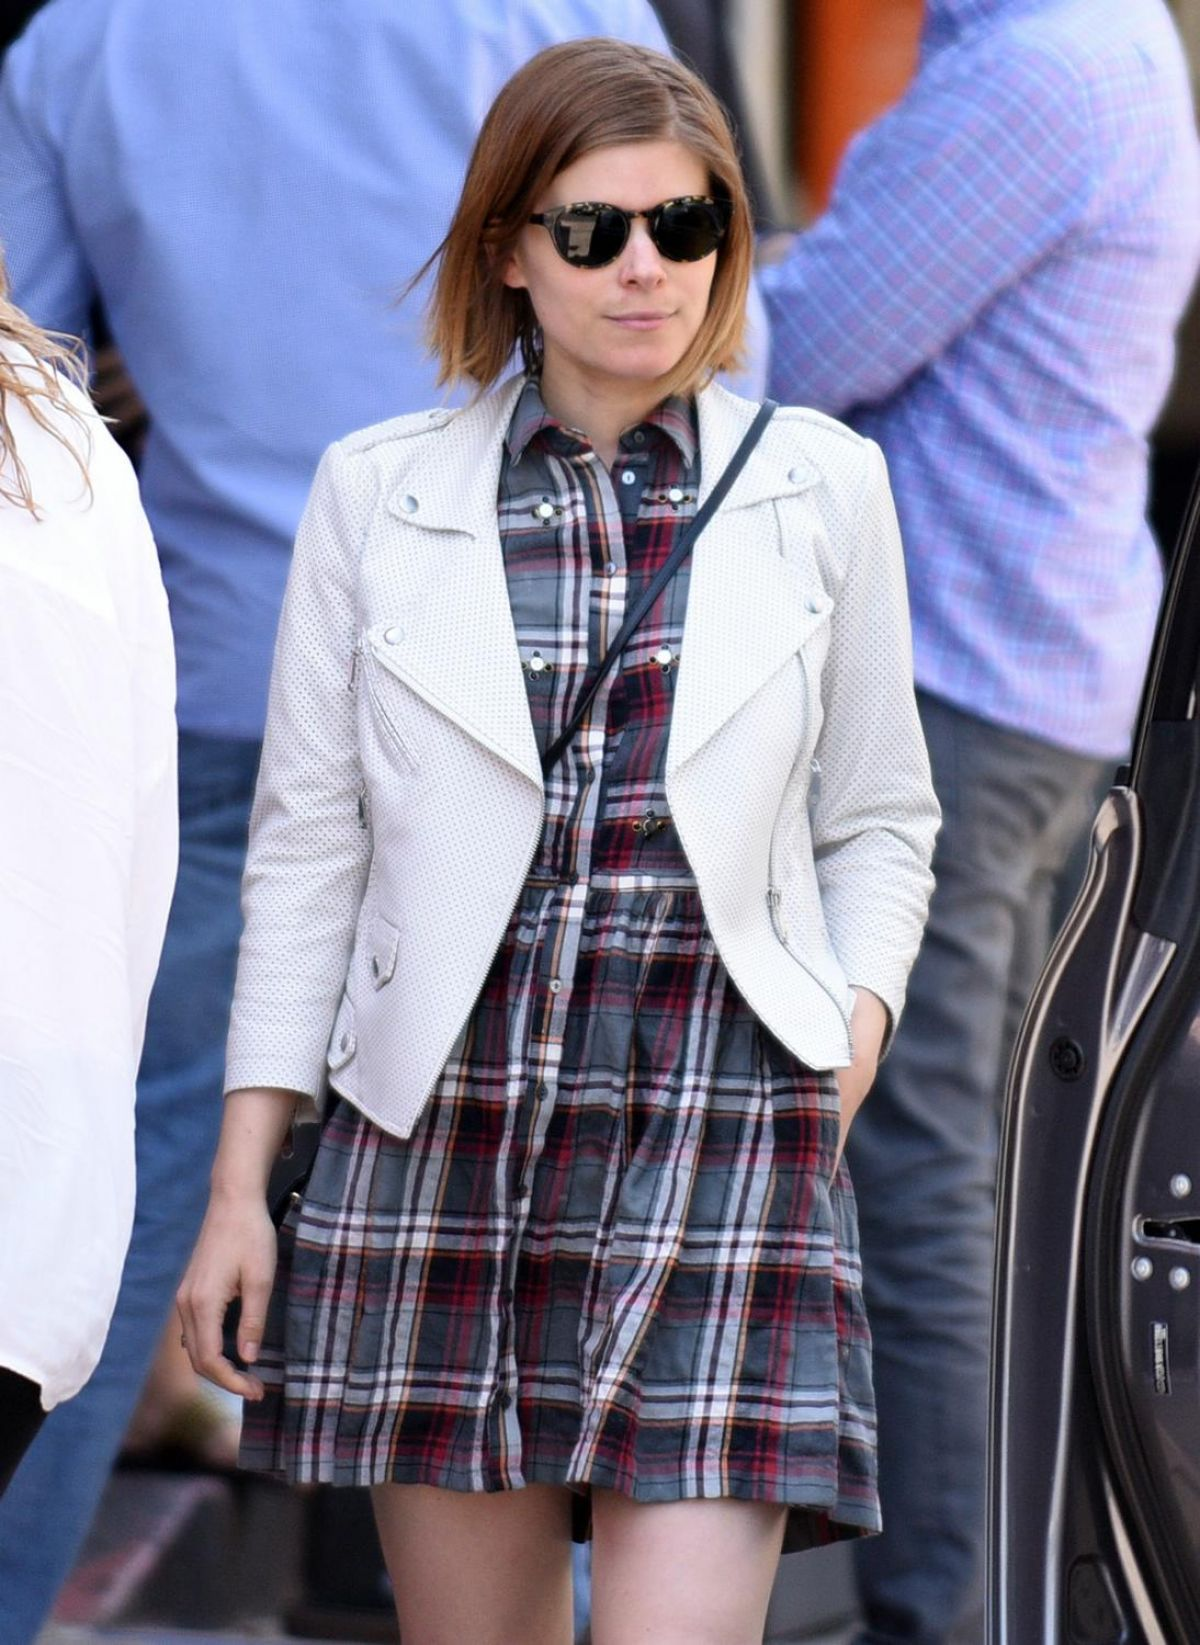 Kate Mara Lunching With Her Cousin